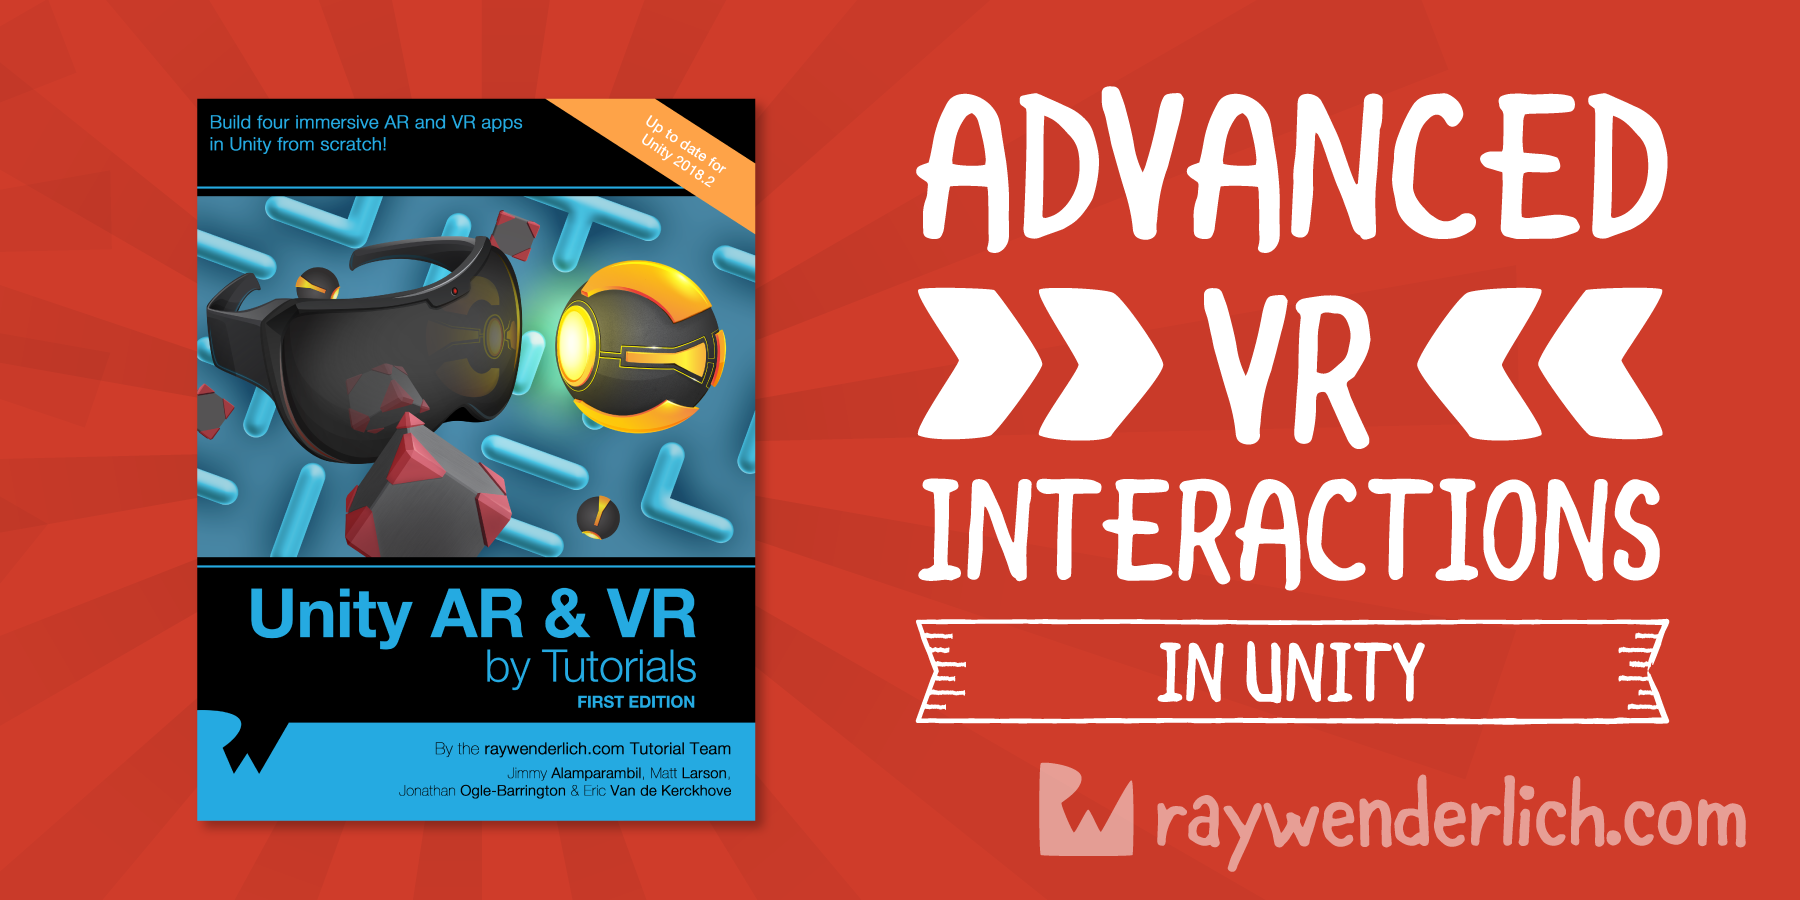 Advanced VR Interactions in Unity Tutorial | raywenderlich com